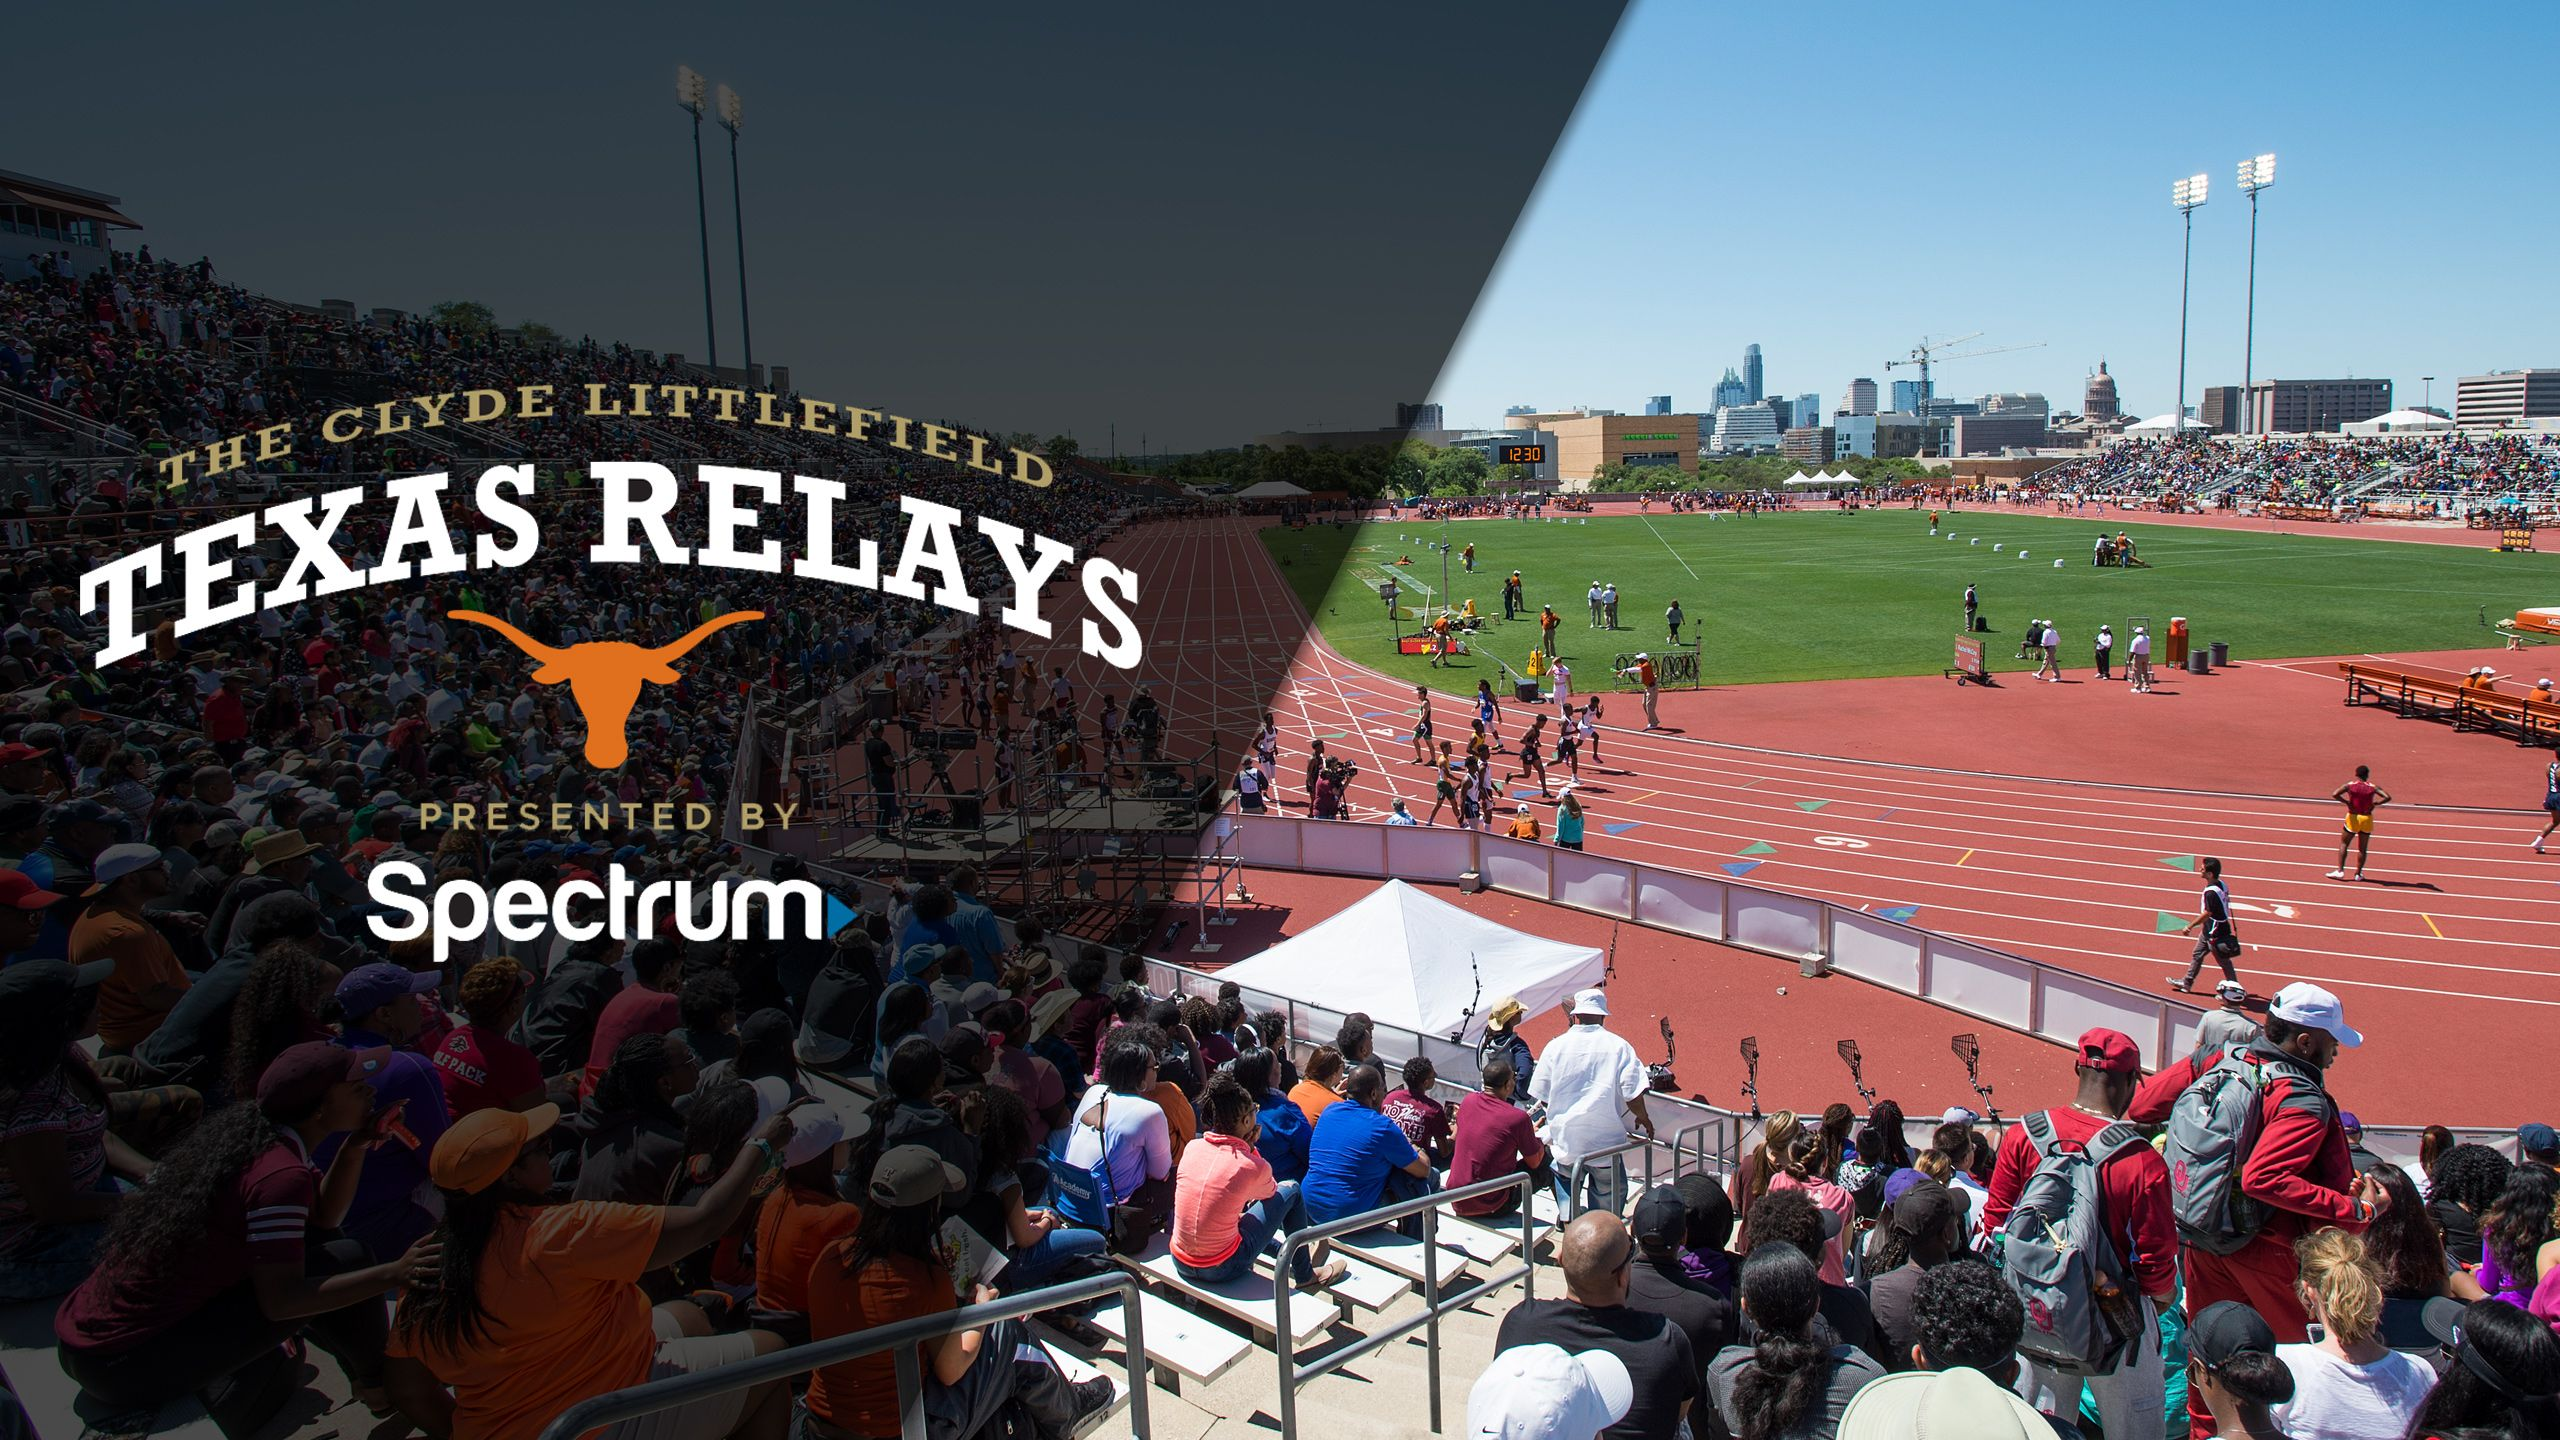 2017 Clyde Littlefield Texas Relays Presented by Spectrum